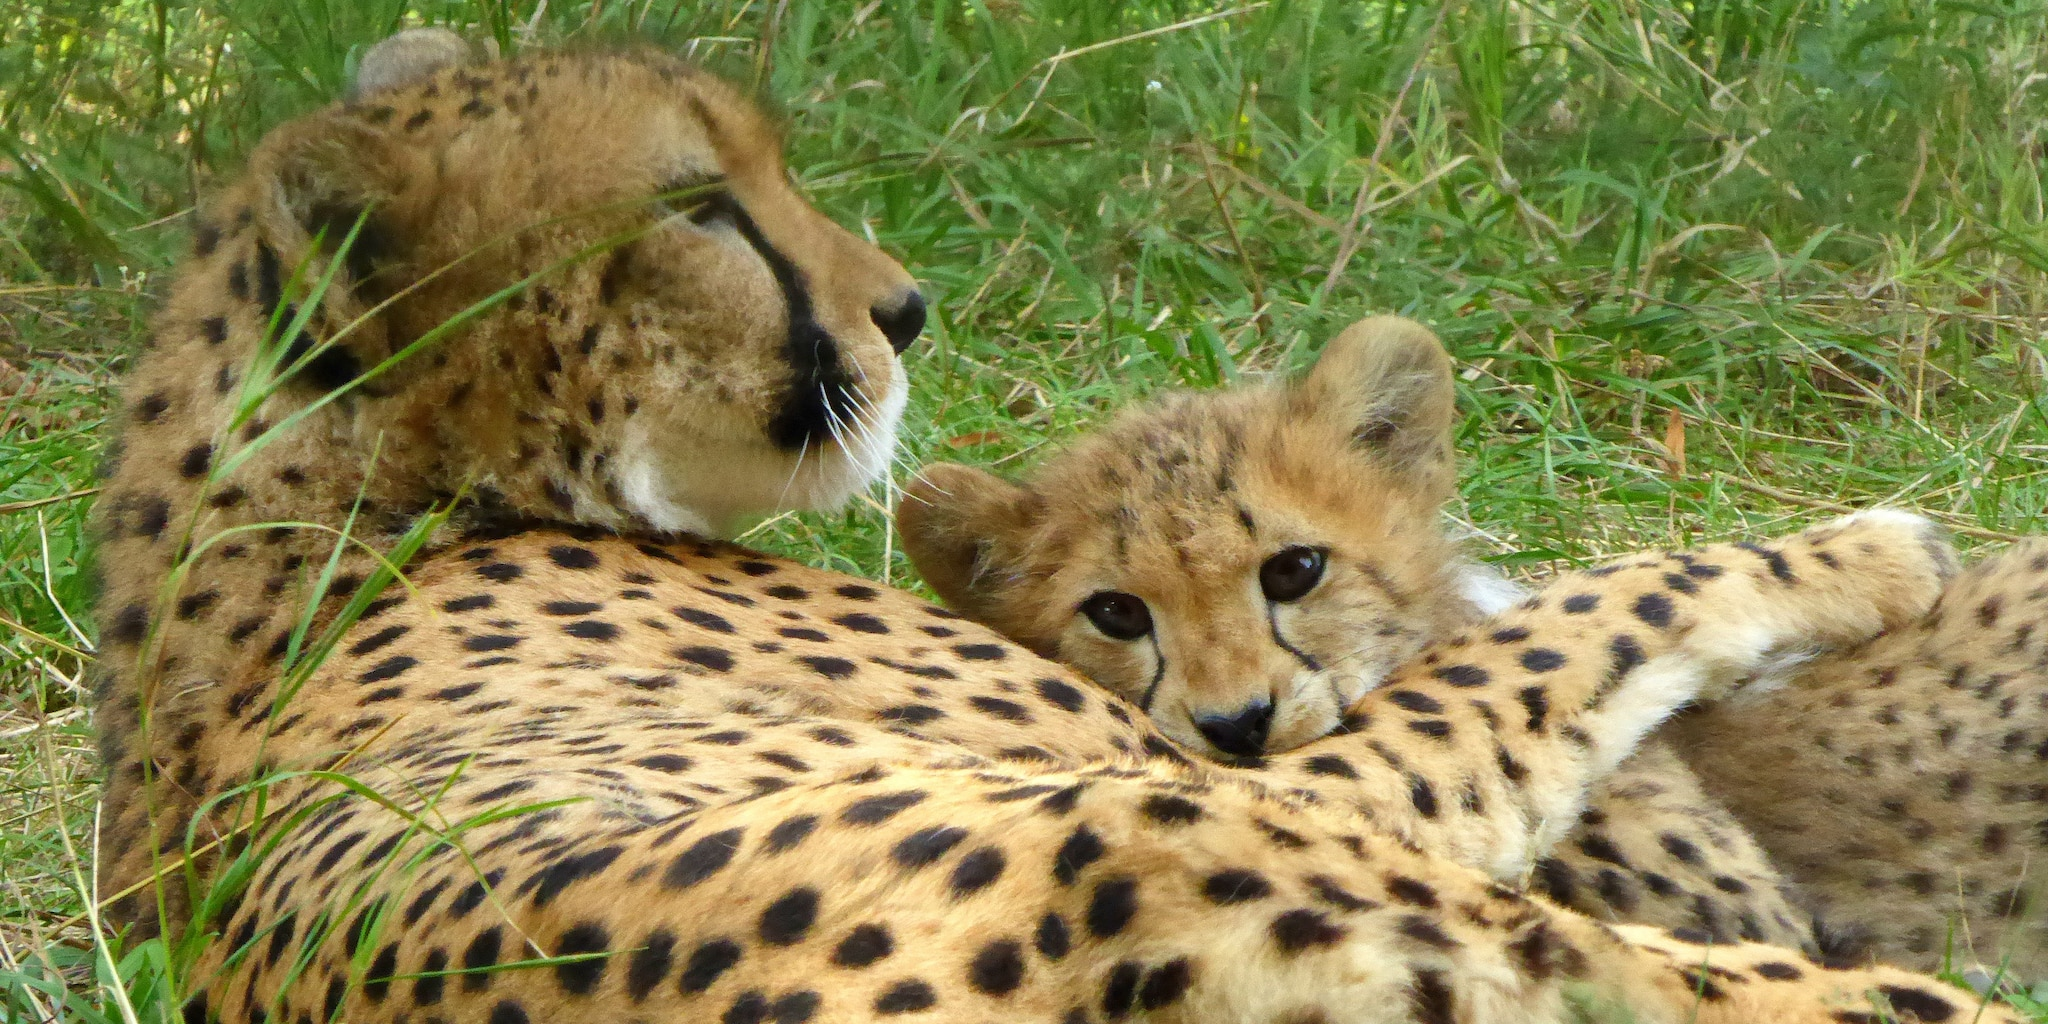 A mother and baby cheetah